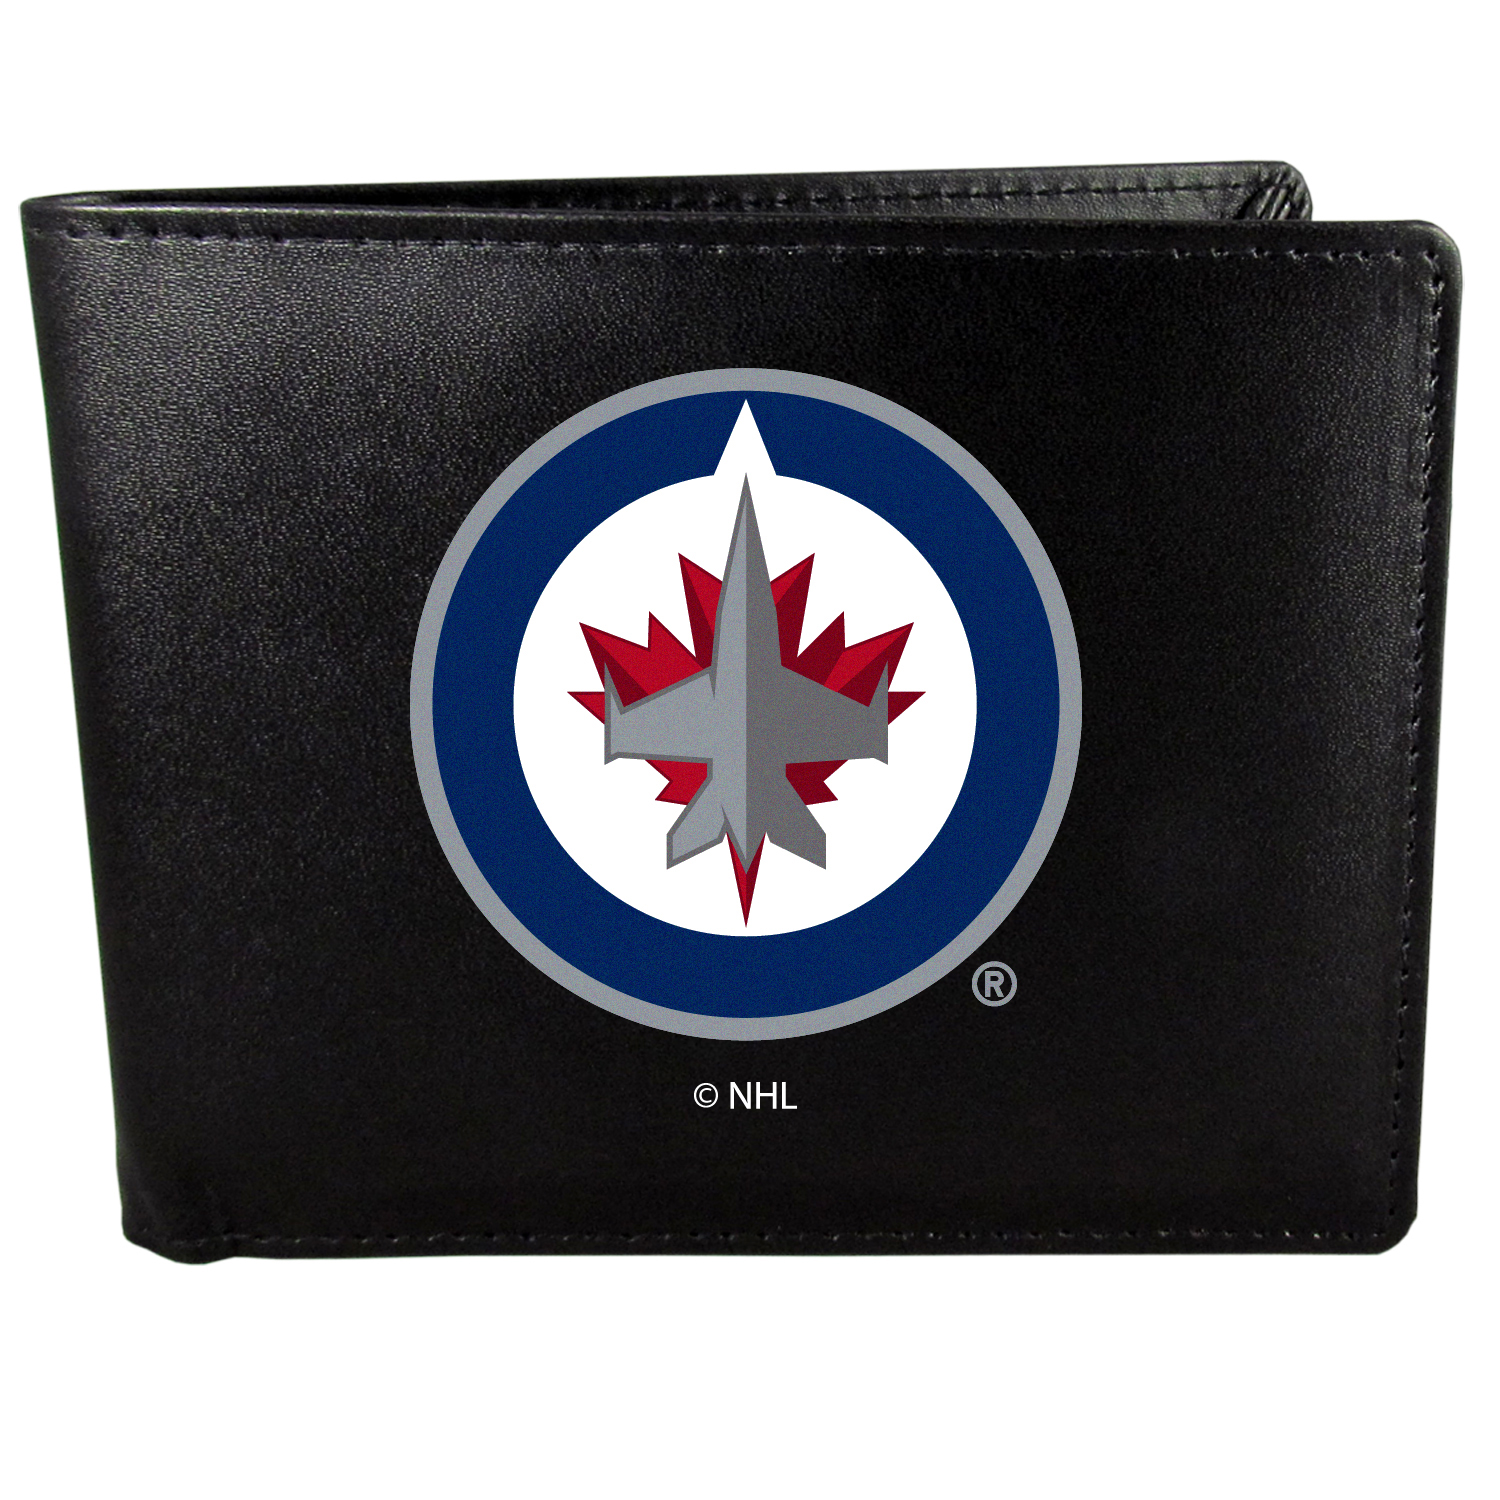 Winnipeg Jets? Bi-fold Wallet Large Logo - Sports fans do not have to sacrifice style with this classic bi-fold wallet that sports the Winnipeg Jets??extra large logo. This men's fashion accessory has a leather grain look and expert craftmanship for a quality wallet at a great price. The wallet features inner credit card slots, windowed ID slot and a large billfold pocket. The front of the wallet features a printed team logo.